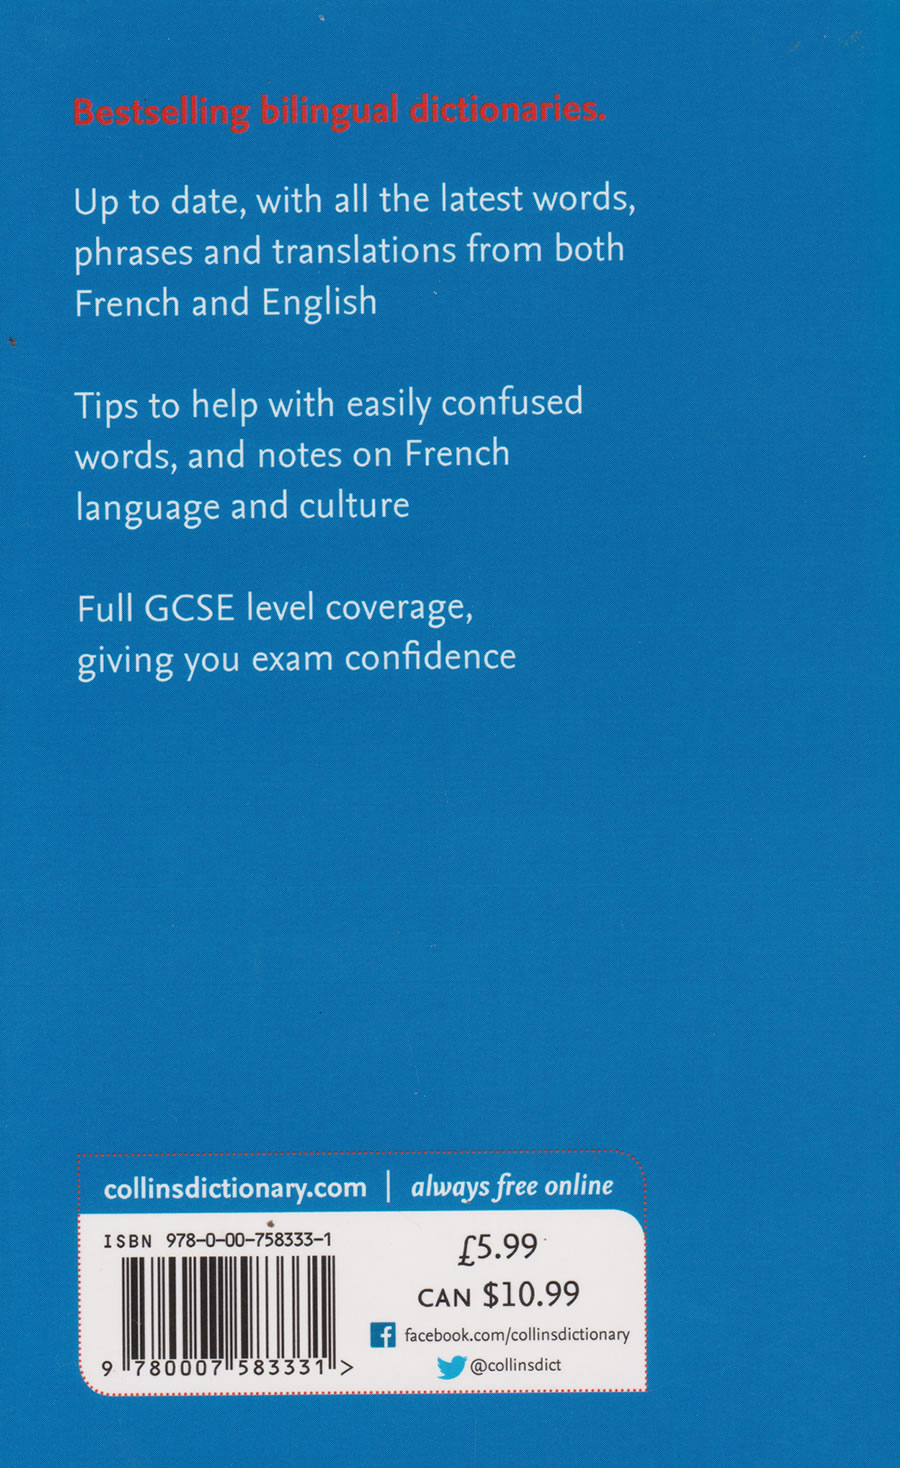 Collins French Dictionary Essential edition | Books, Stationery, Computers,  Laptops and more  Buy online and get free delivery on orders above Ksh